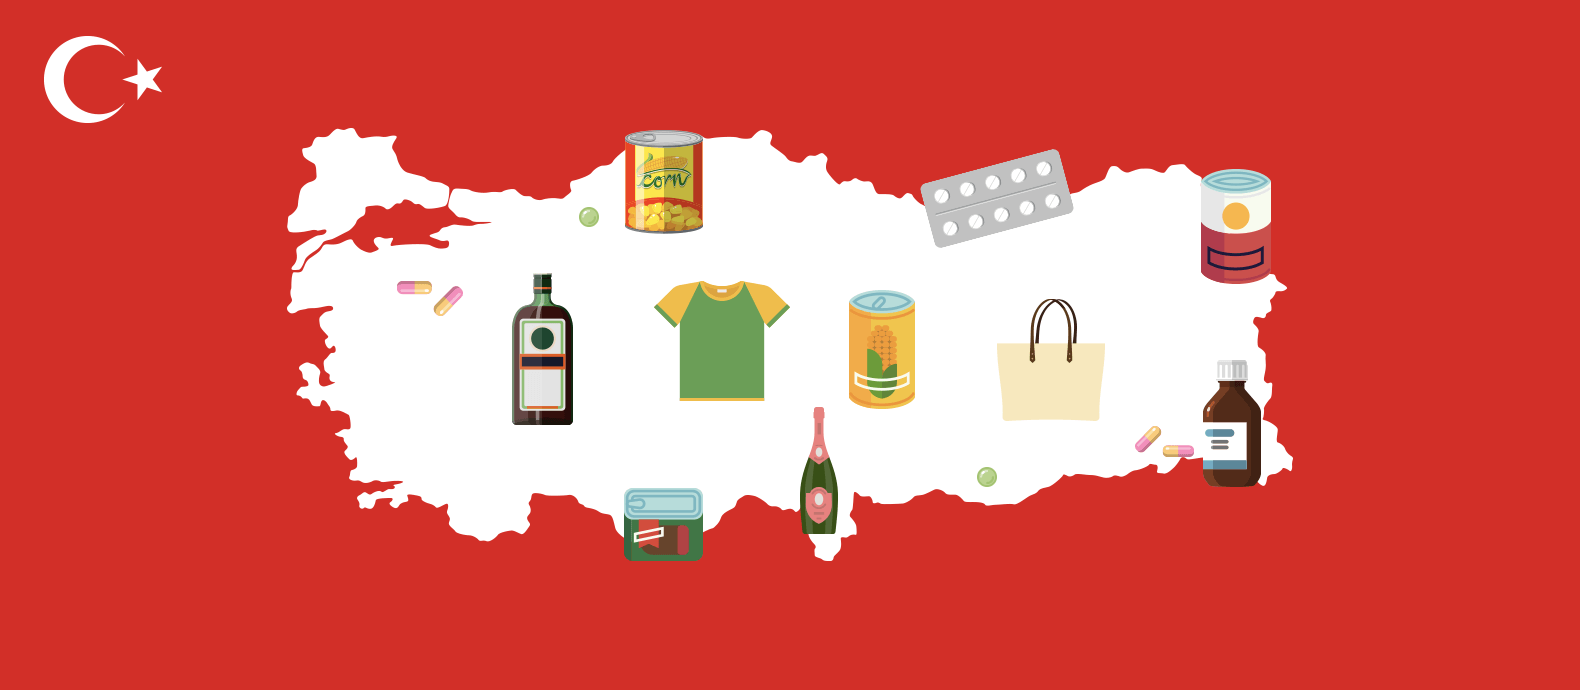 Turkey is the biggest producer of counterfeits near Europe